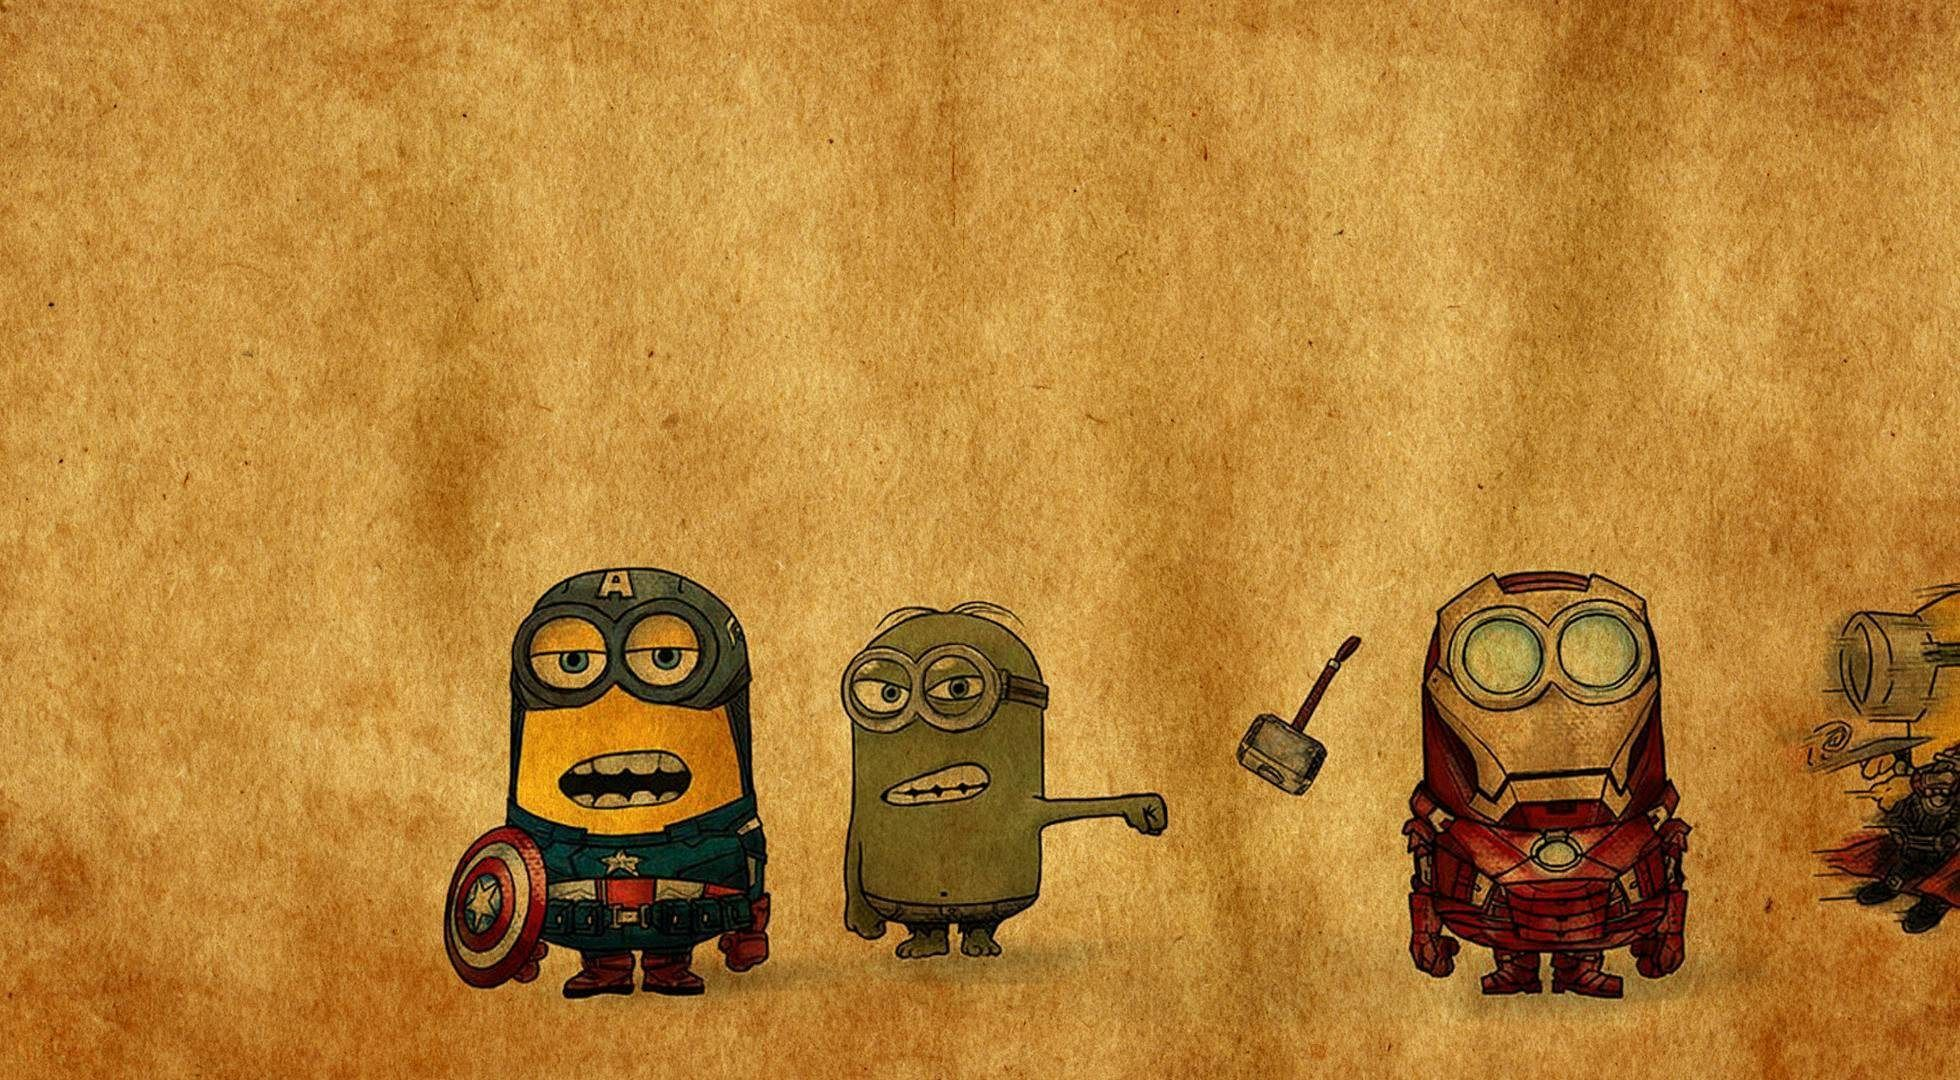 Free Superhero Wallpapers For Laptops Minions Wallpaper Avengers Wallpaper Superhero Wallpaper